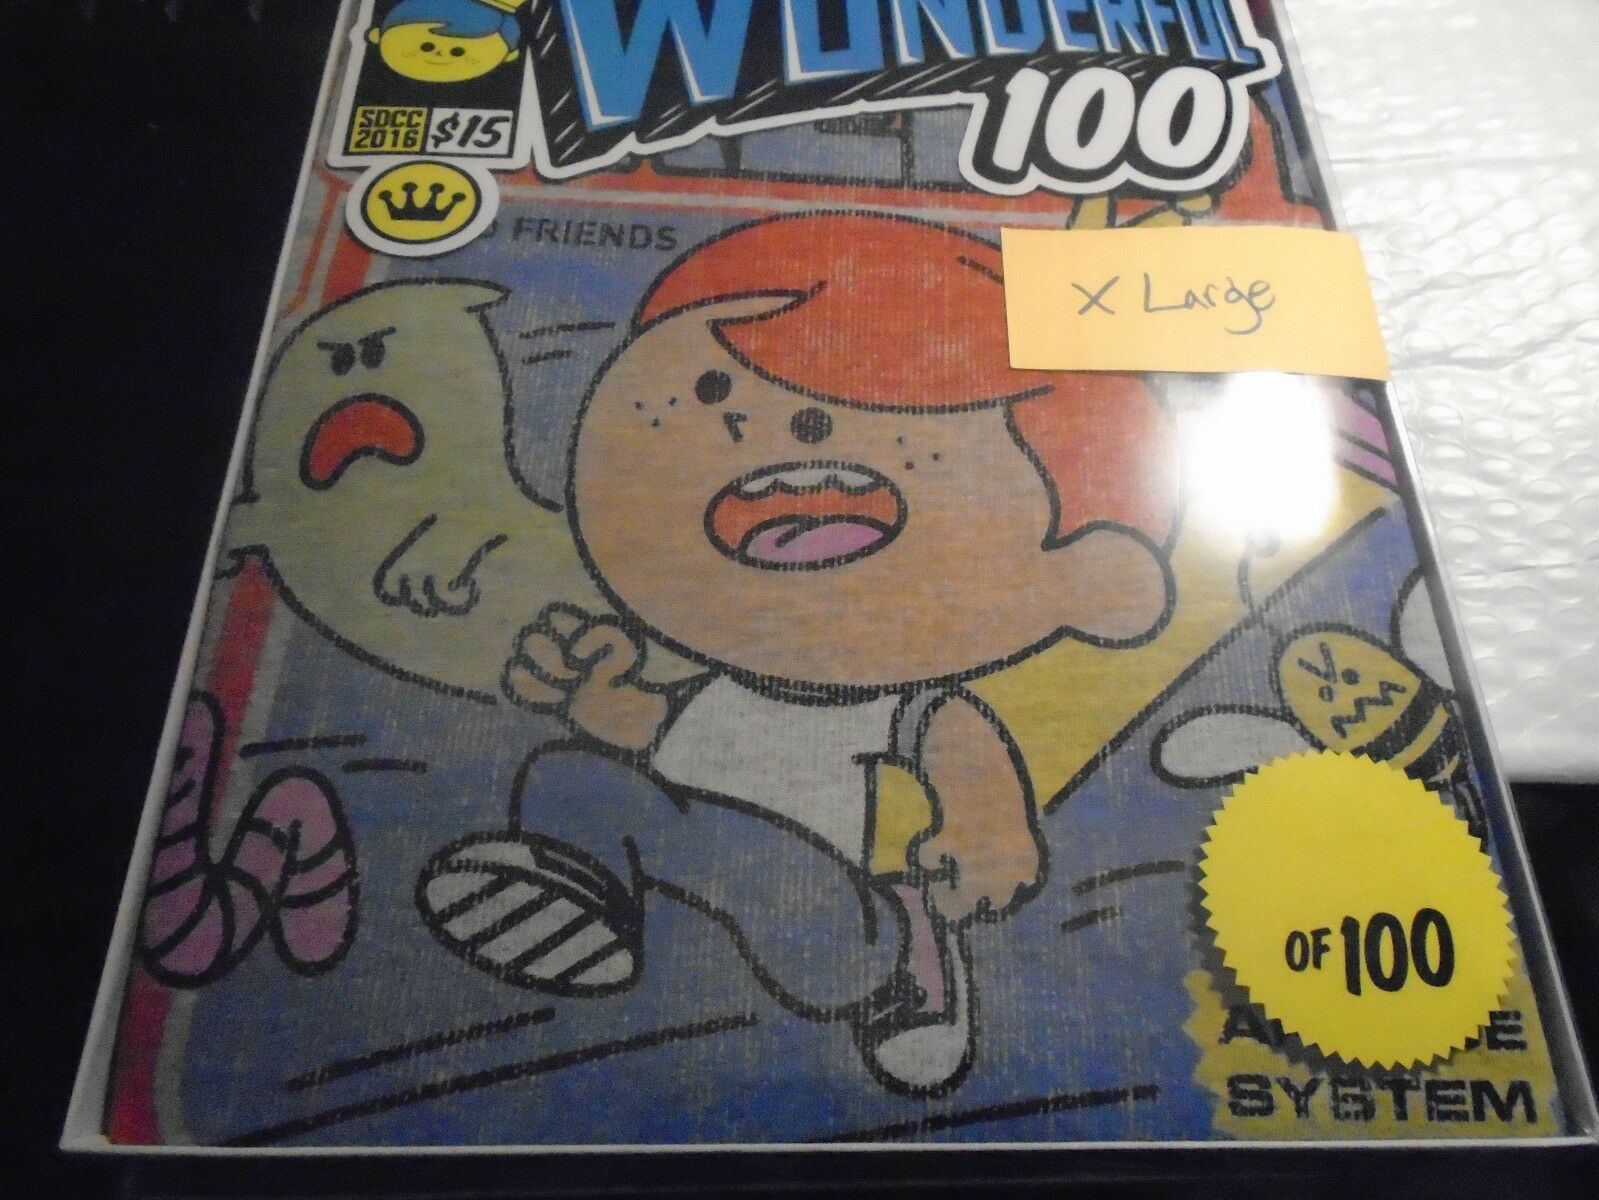 SDCC 2016 EXCLUSIVE Funko FROTdy Arcade Tee Wonderful 100 Limited to 100 XLarge